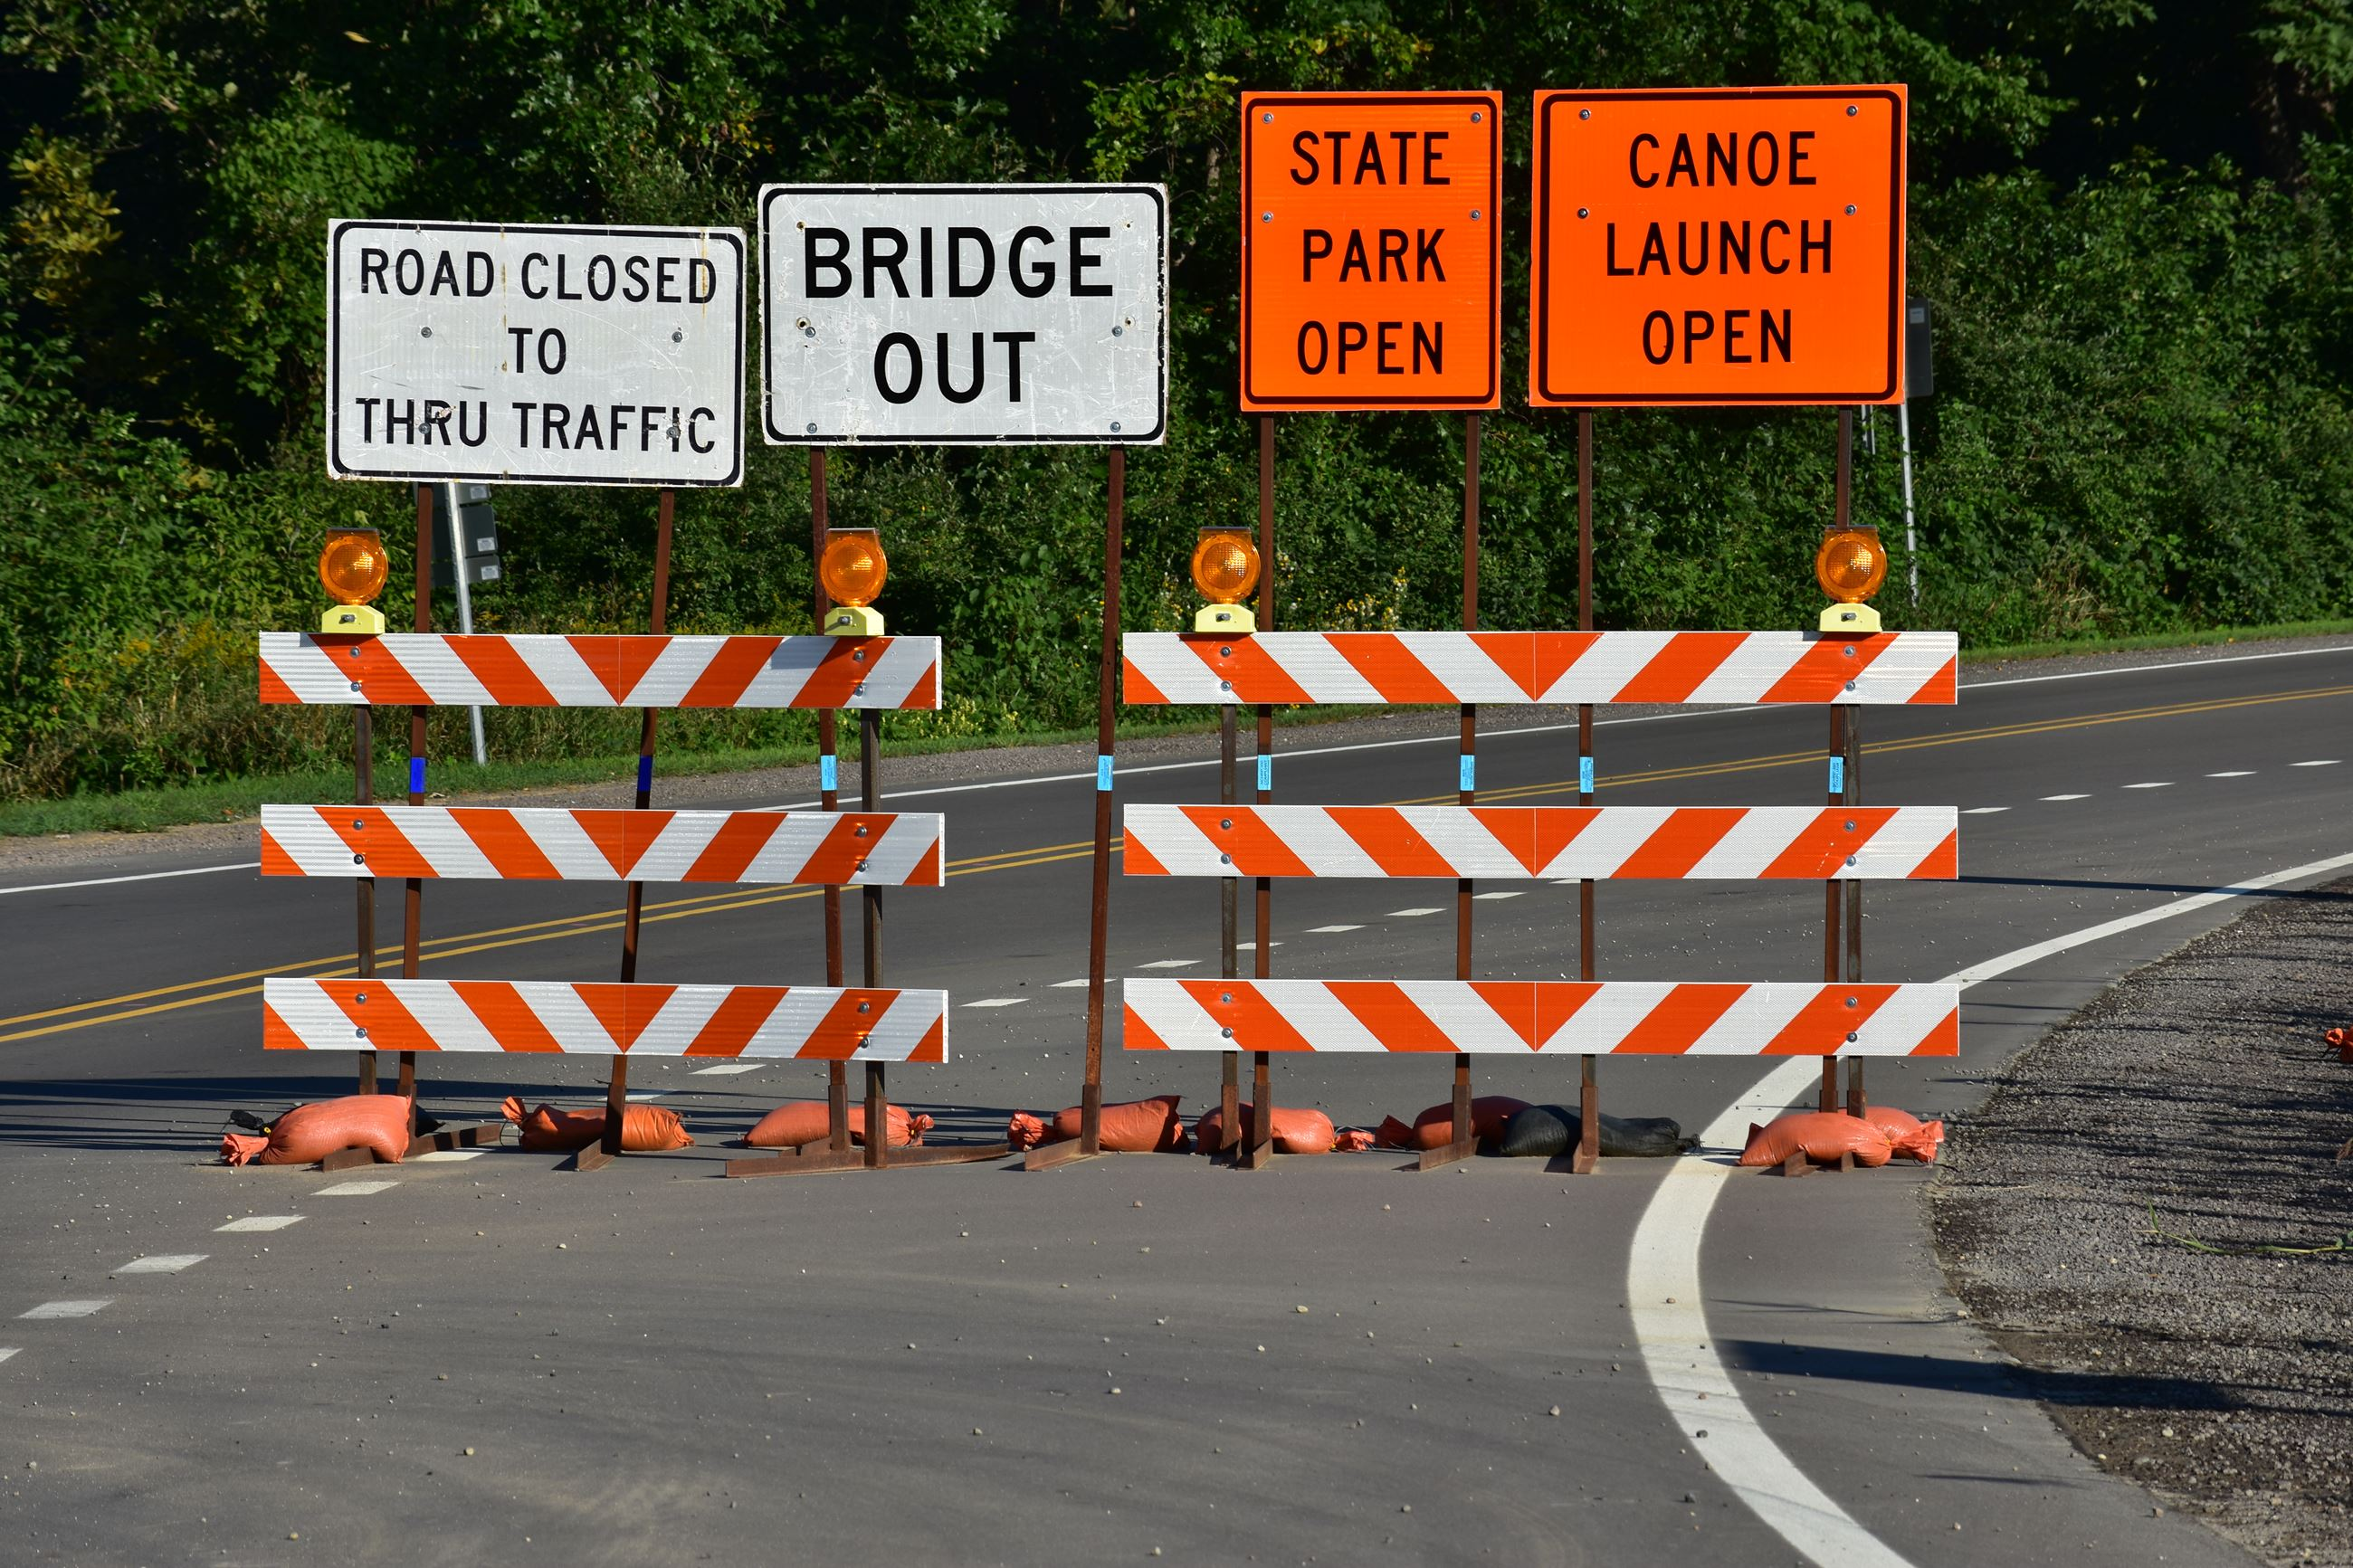 Wixom Road closed, bridge out, state park open and canoe launch open signage